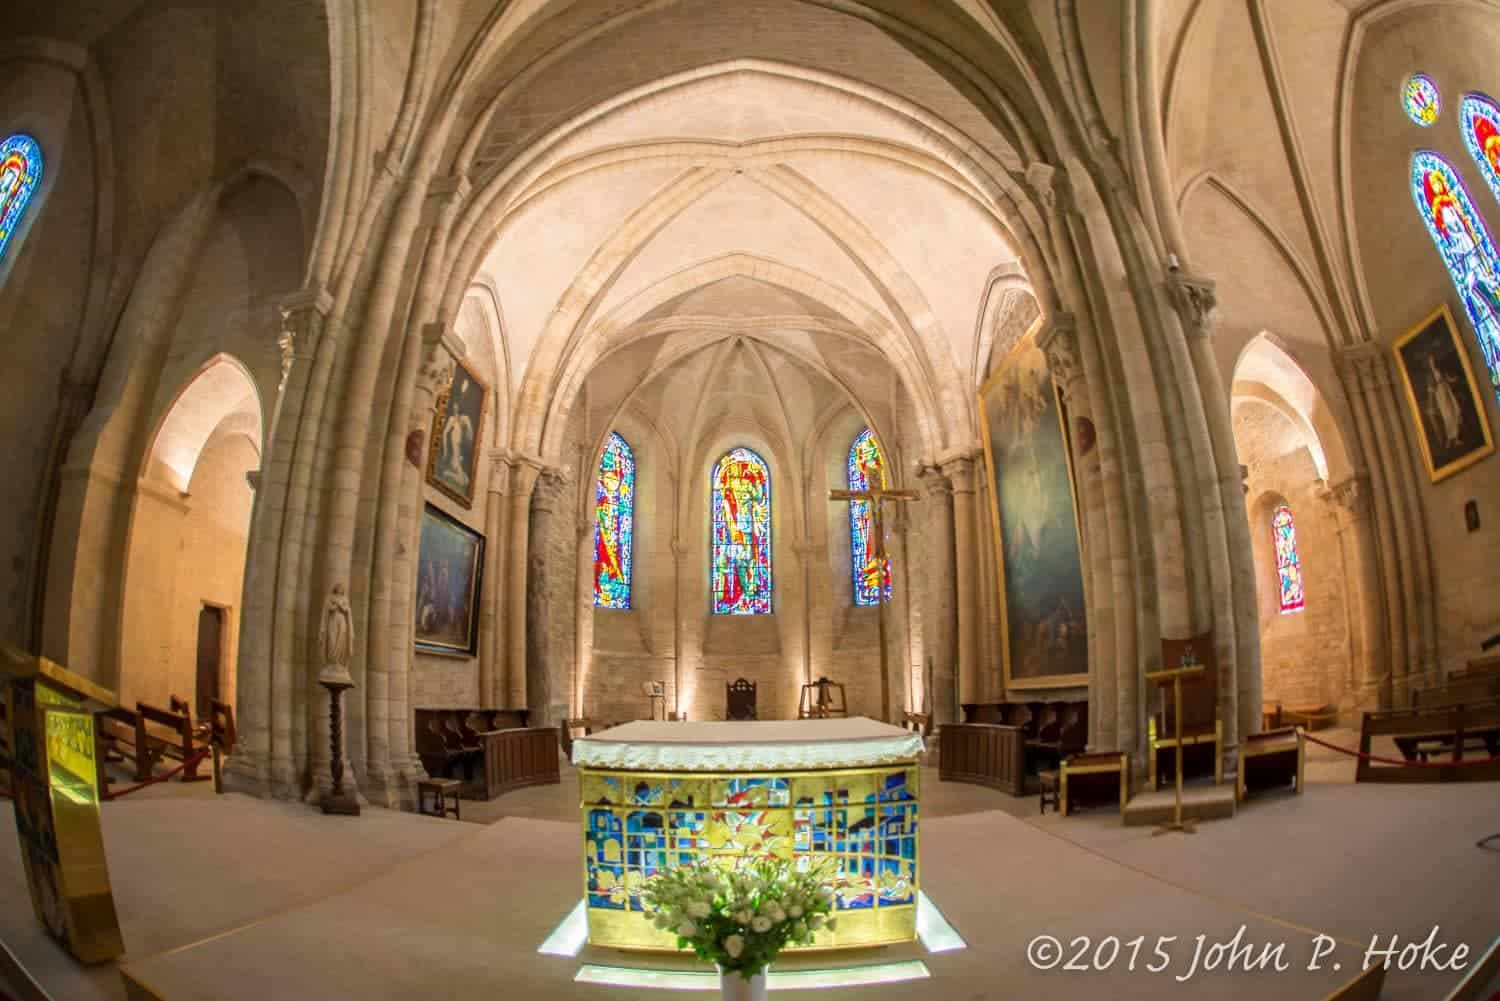 Altar through Fisheye - John P. Hoke